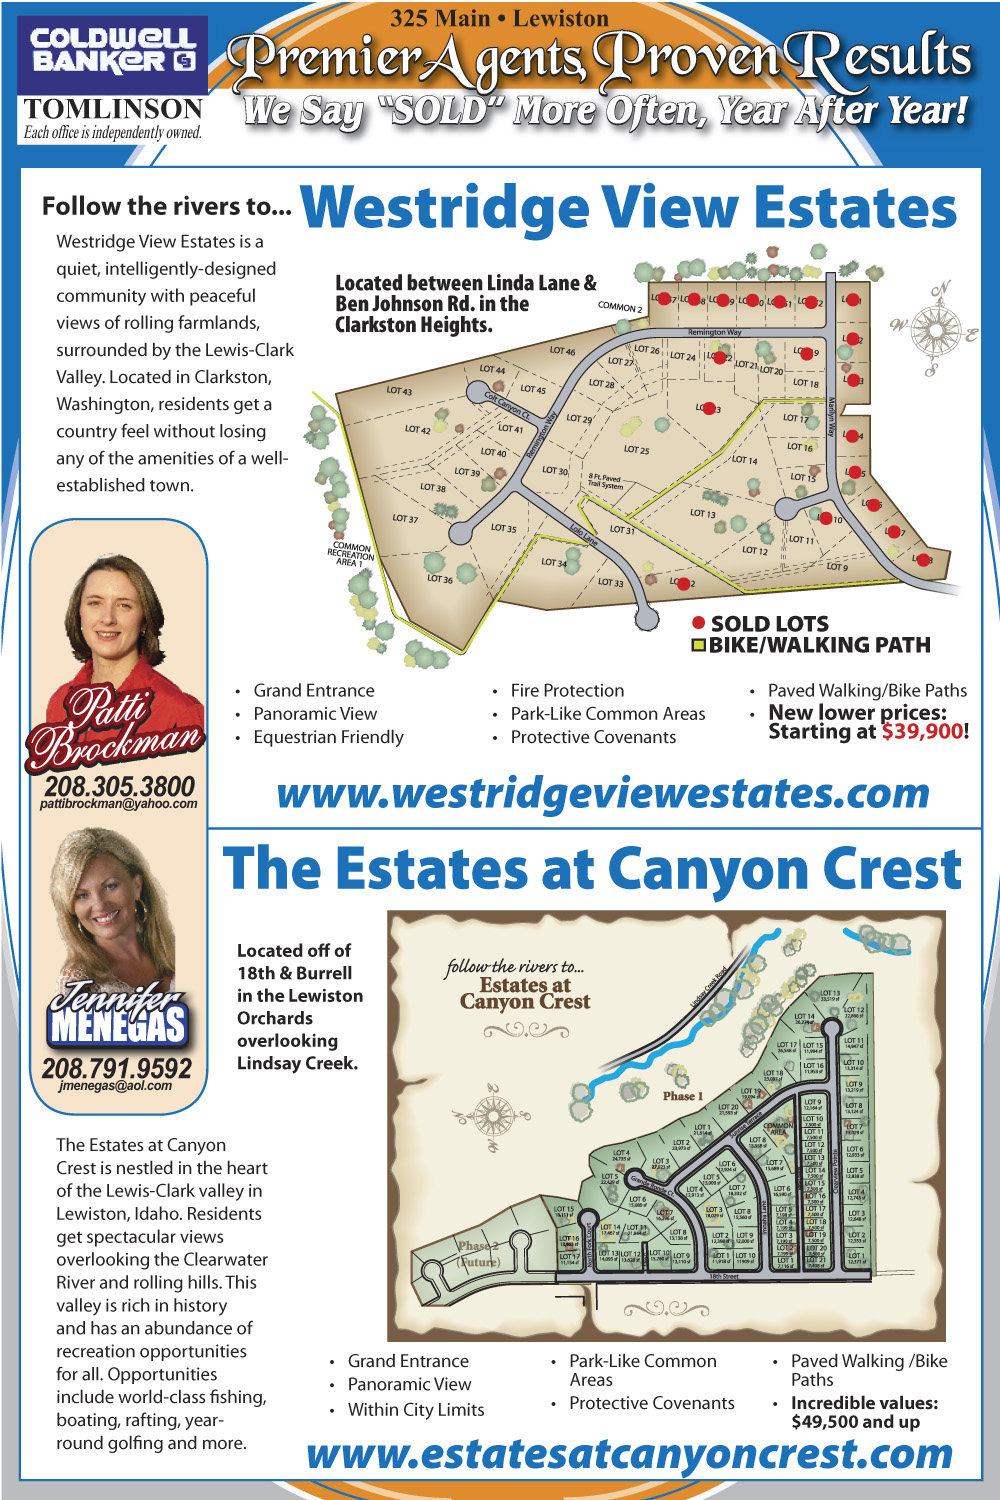 CanyonCrest0709.jpg